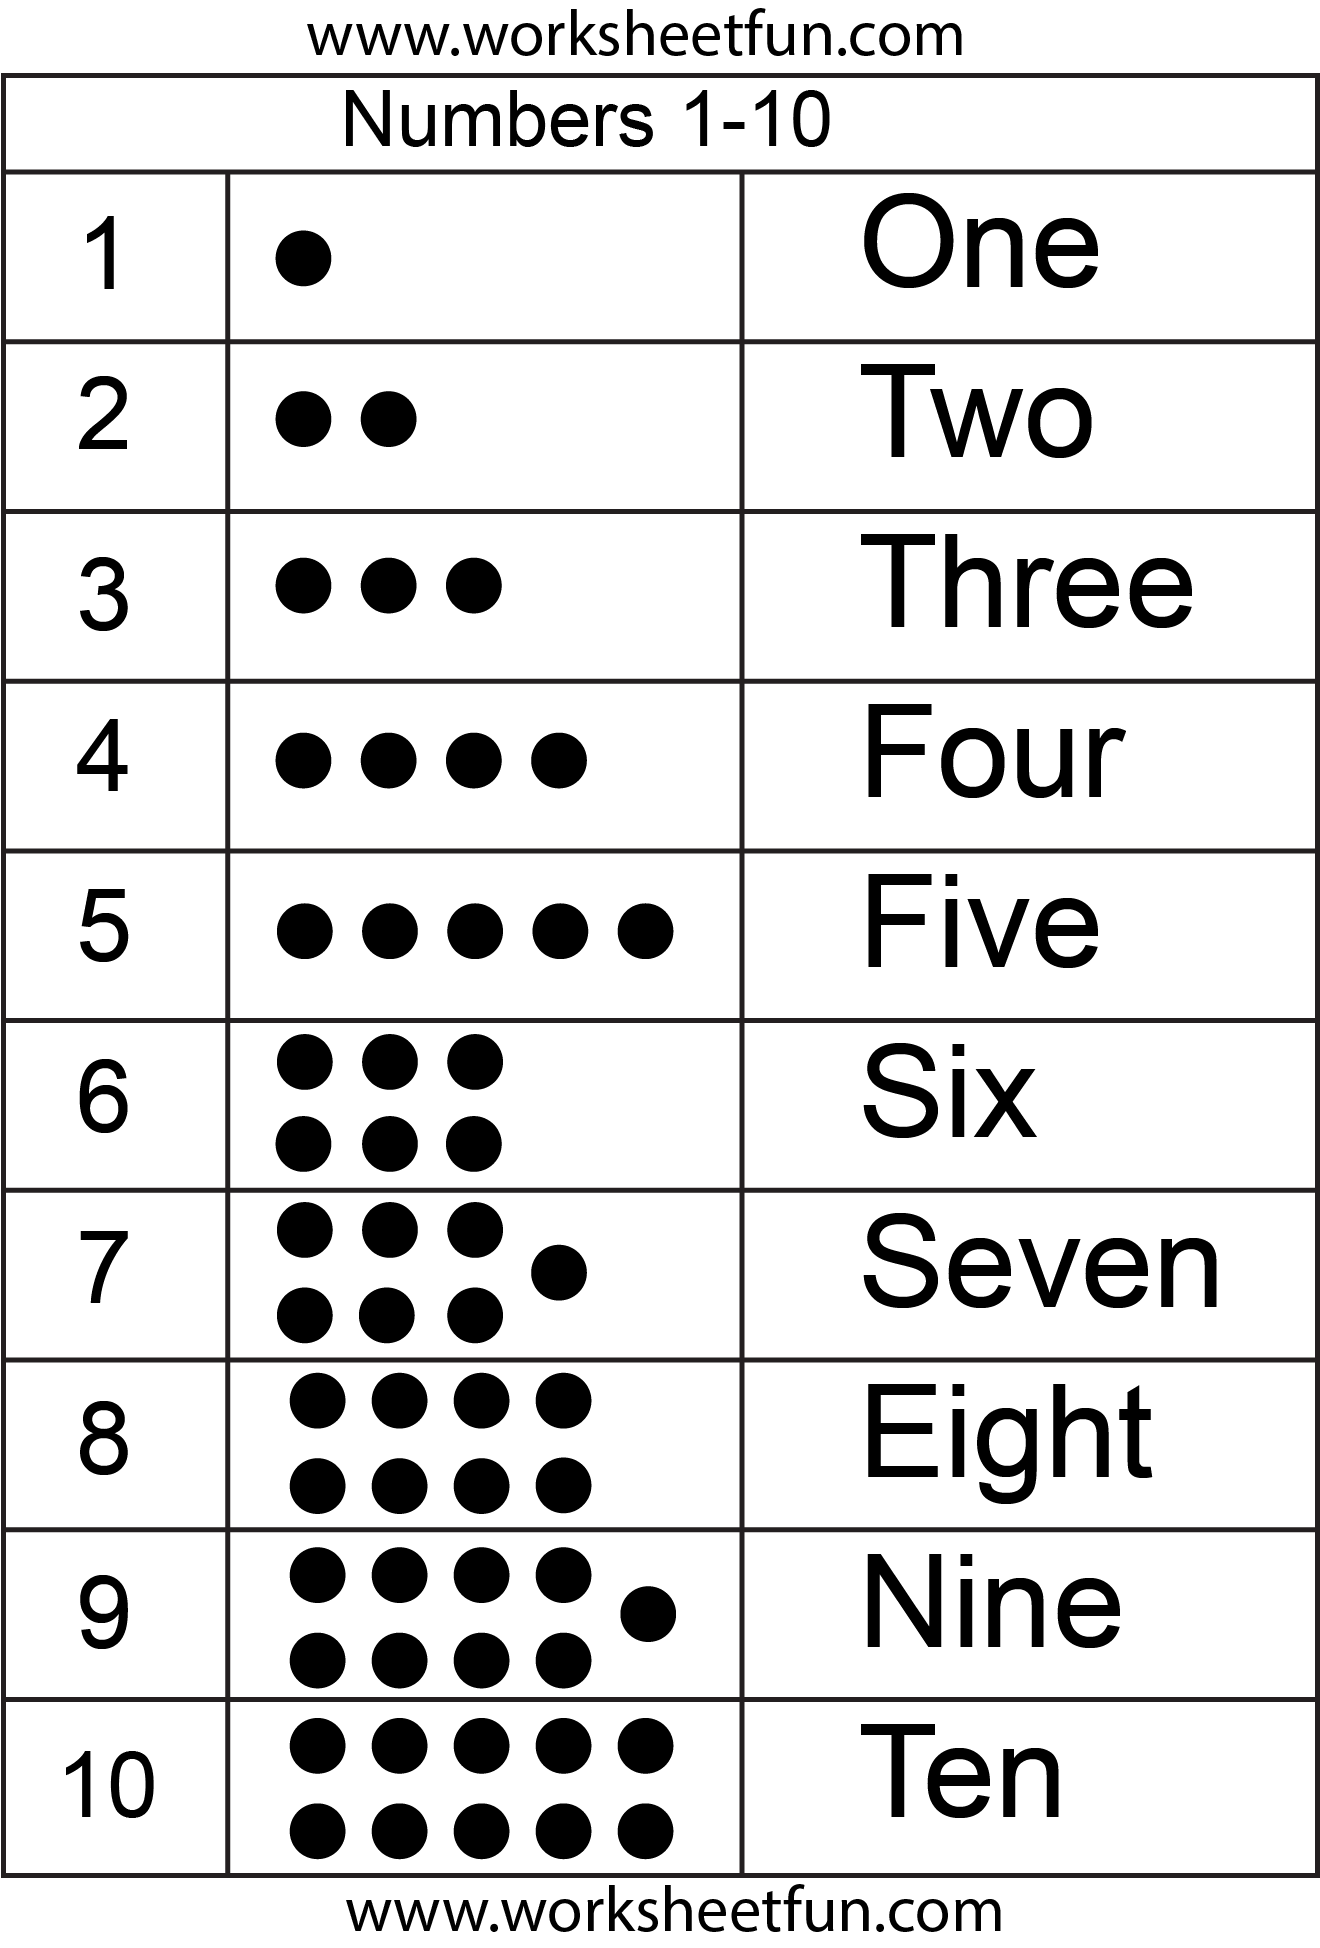 worksheet Number Words Worksheets 78 images about kindergarten numbers on pinterest sunflower seeds number words and puzzles